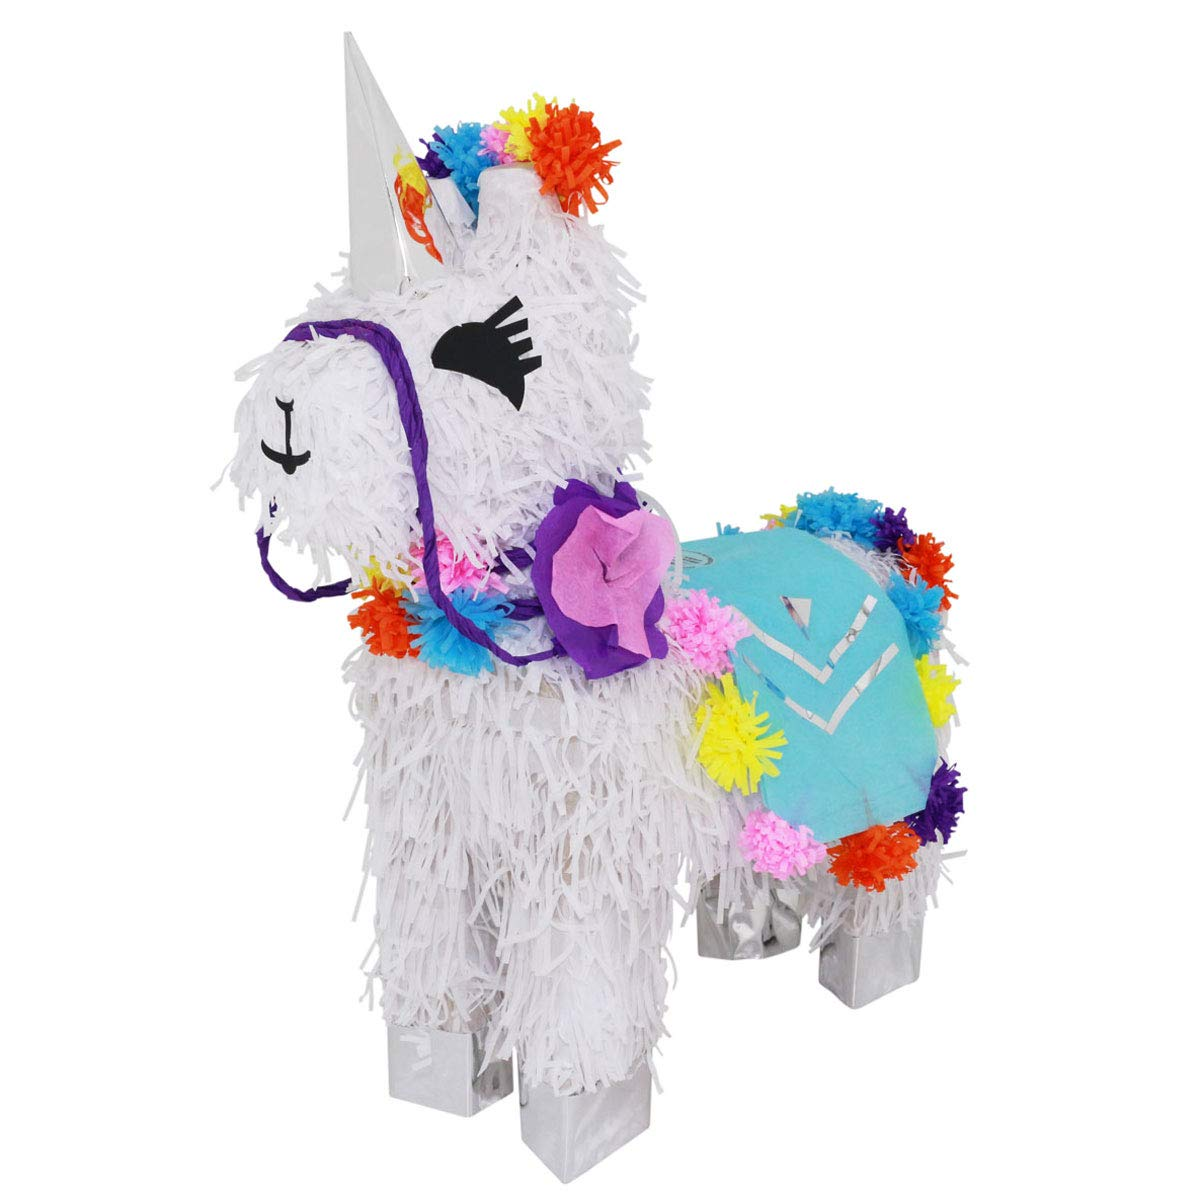 Lytio Unicorn Llama Mix-Match Pinata Peruvian Style Handmade Ideal for Parties, Center Piece or Photo Prop